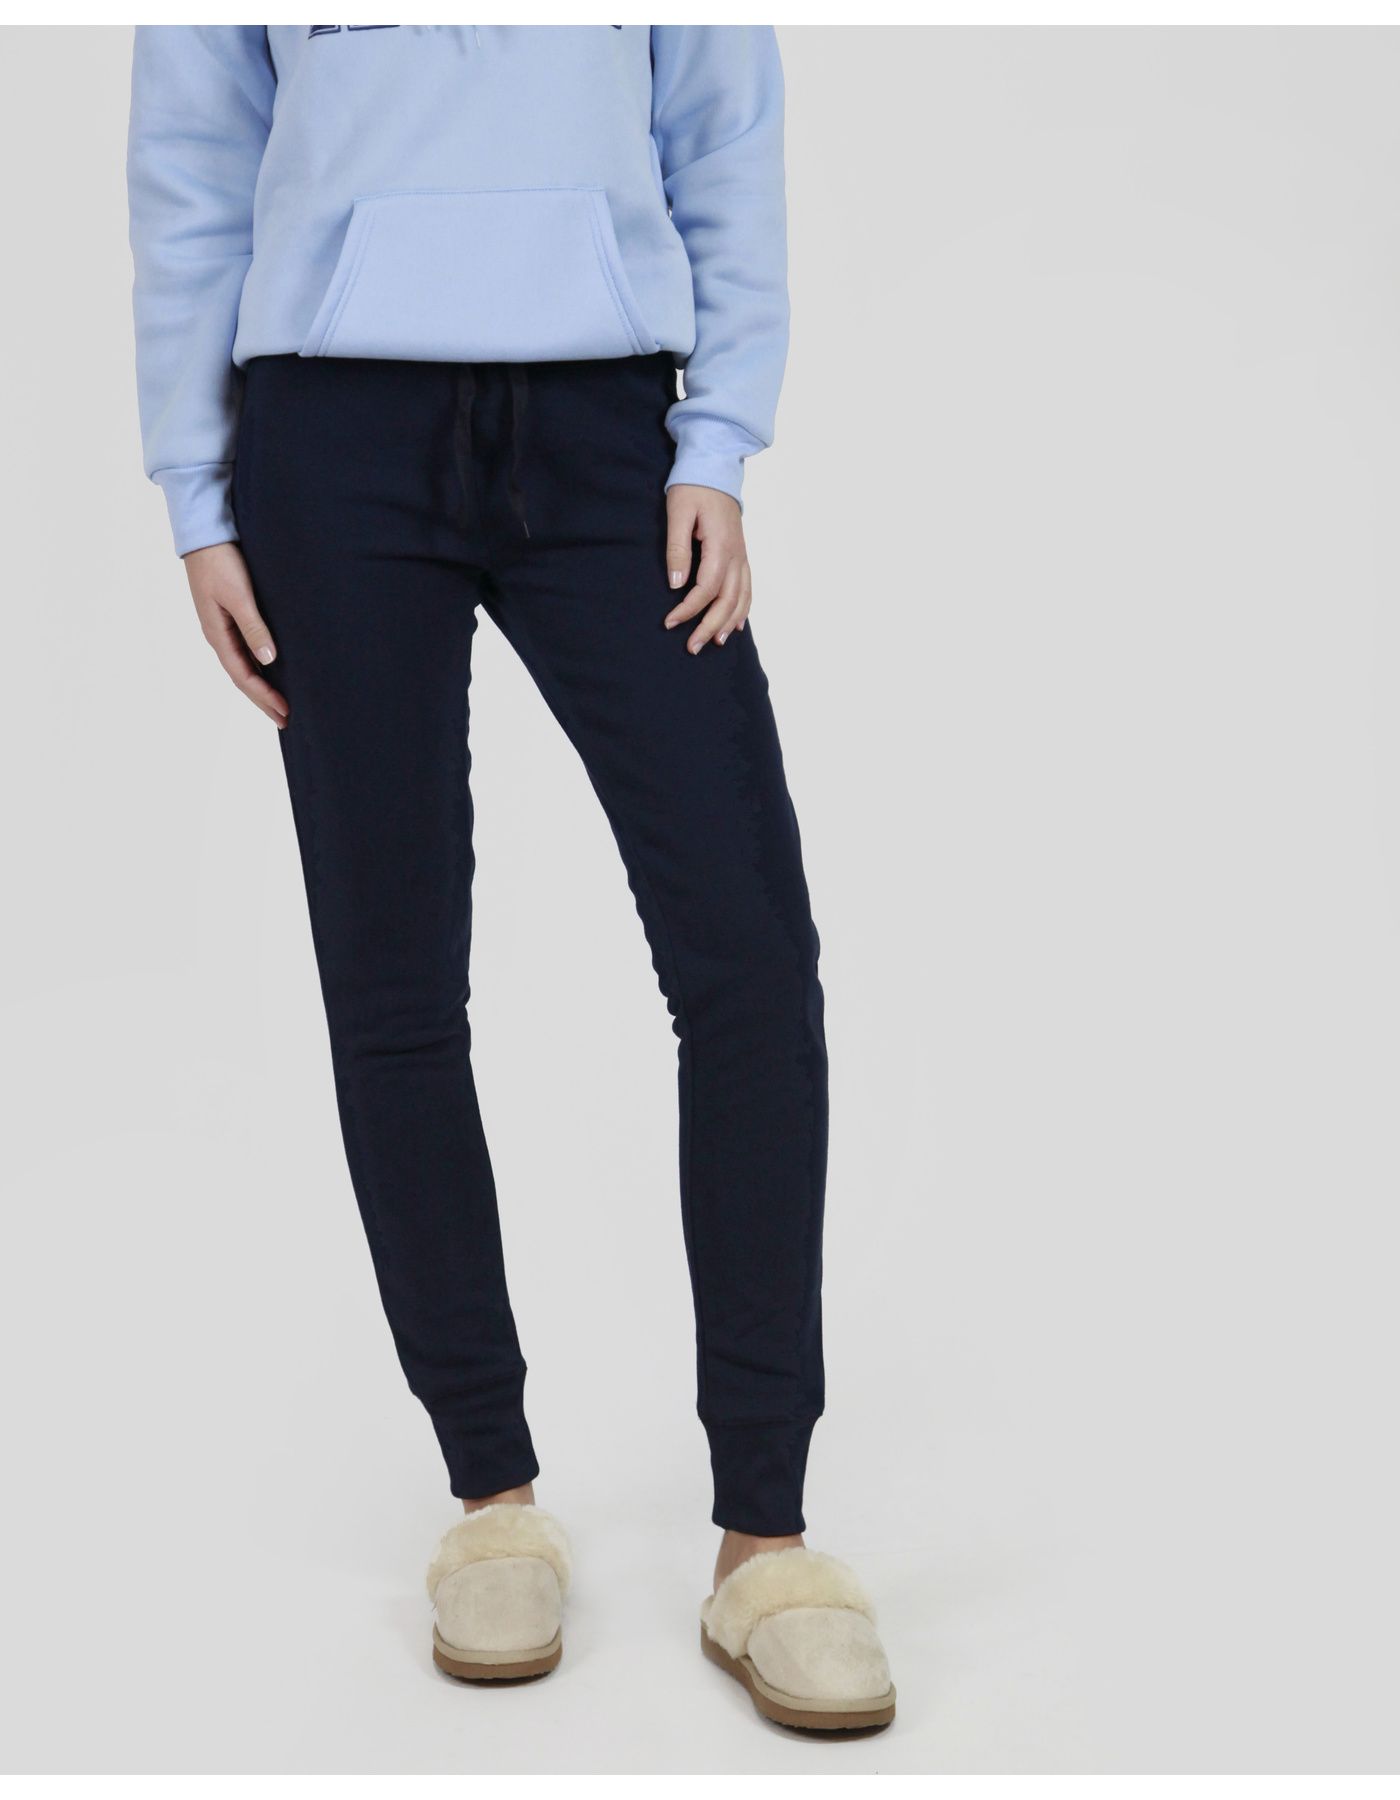 BASIC T/PANT W/CUFF COTTON BRUSHED FLEECE [COLOUR: NAVY] [SIZE: 10]